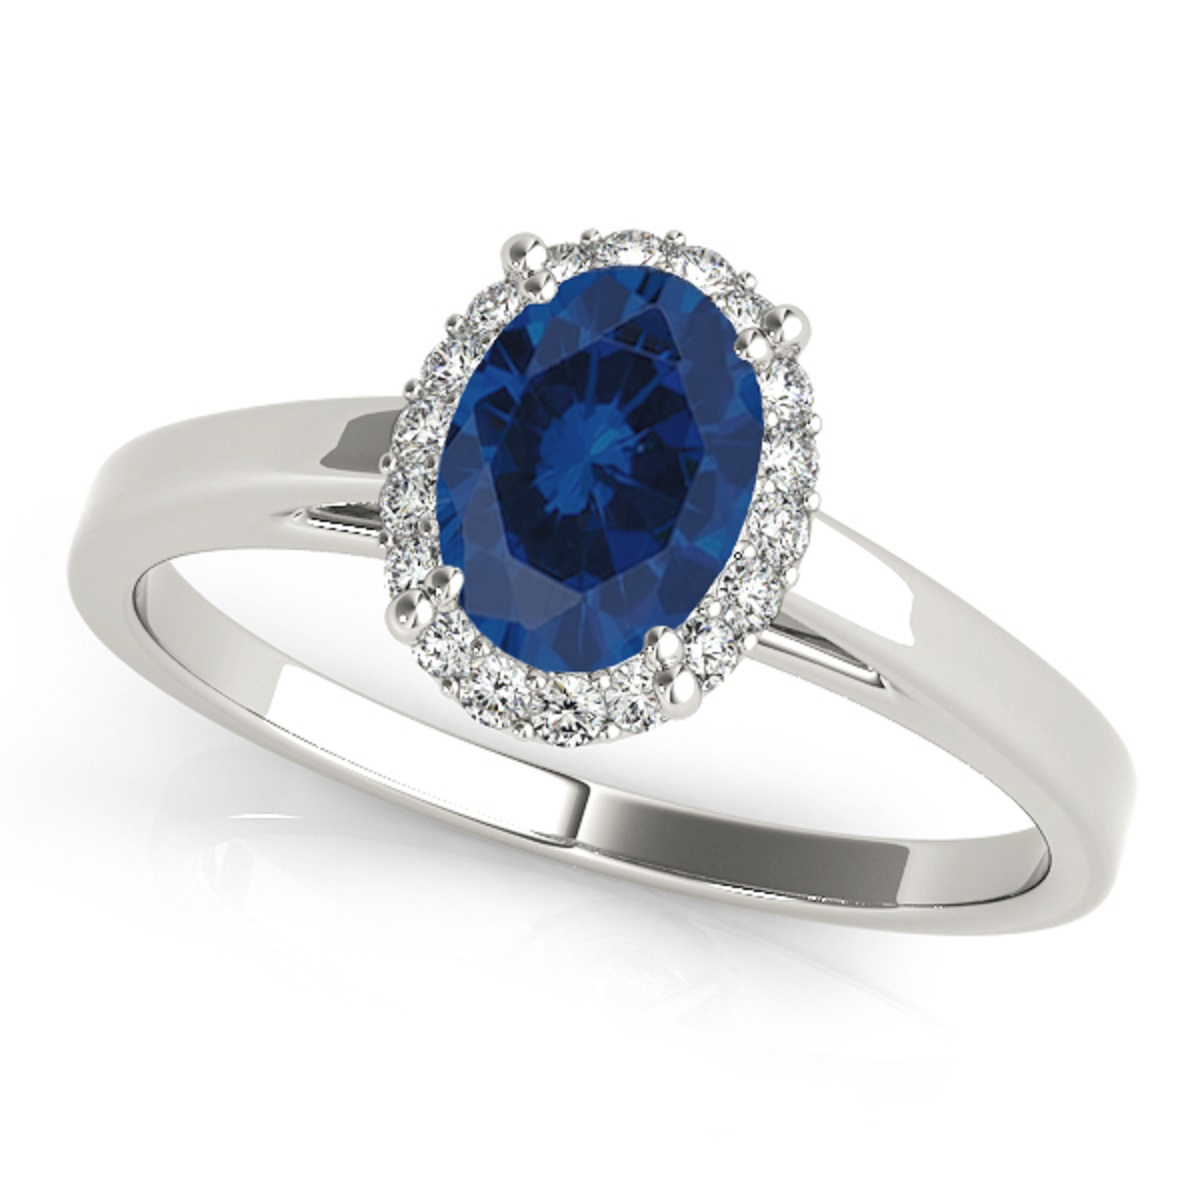 0.55 Ct. Diamond & Oval Shaped Sapphire Engagement Ring -10K Gold